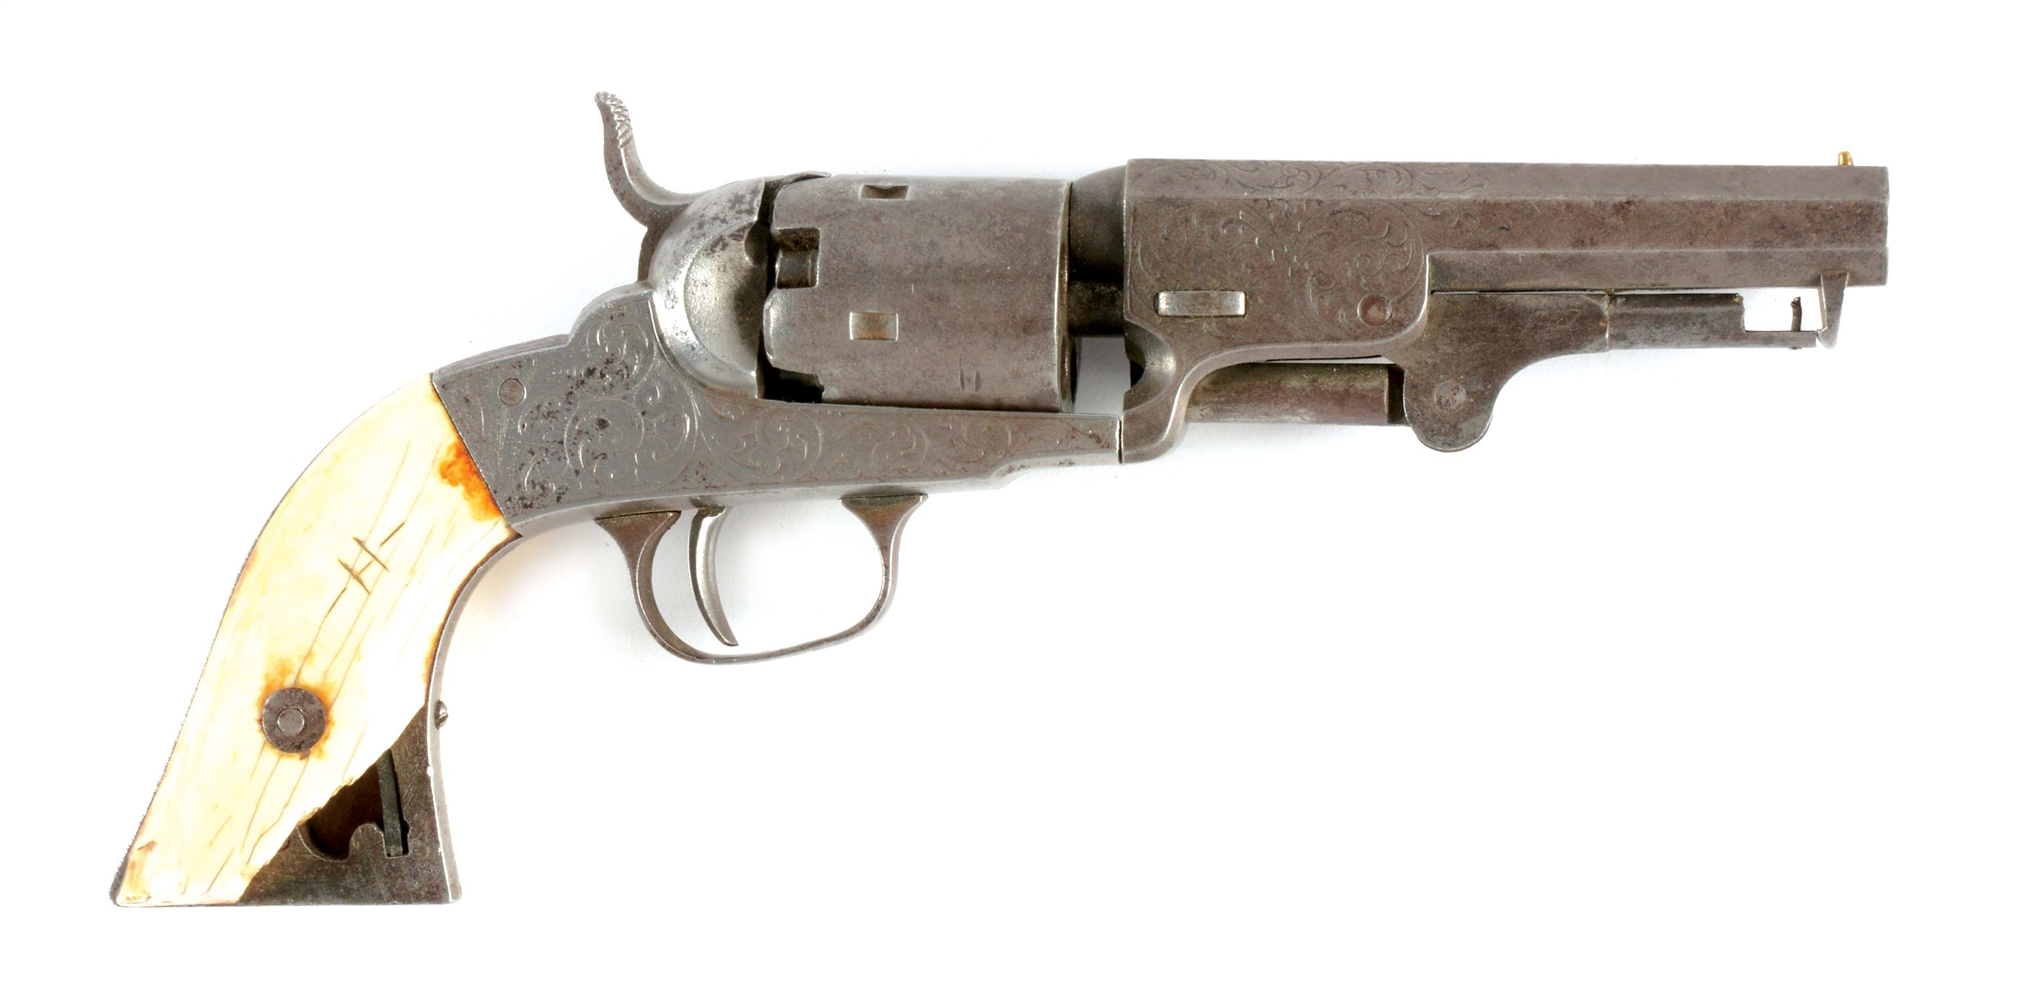 (A) MANHATTAN FIREARMS POCKET MODEL REVOLVER, SERIAL NUMBER 6.